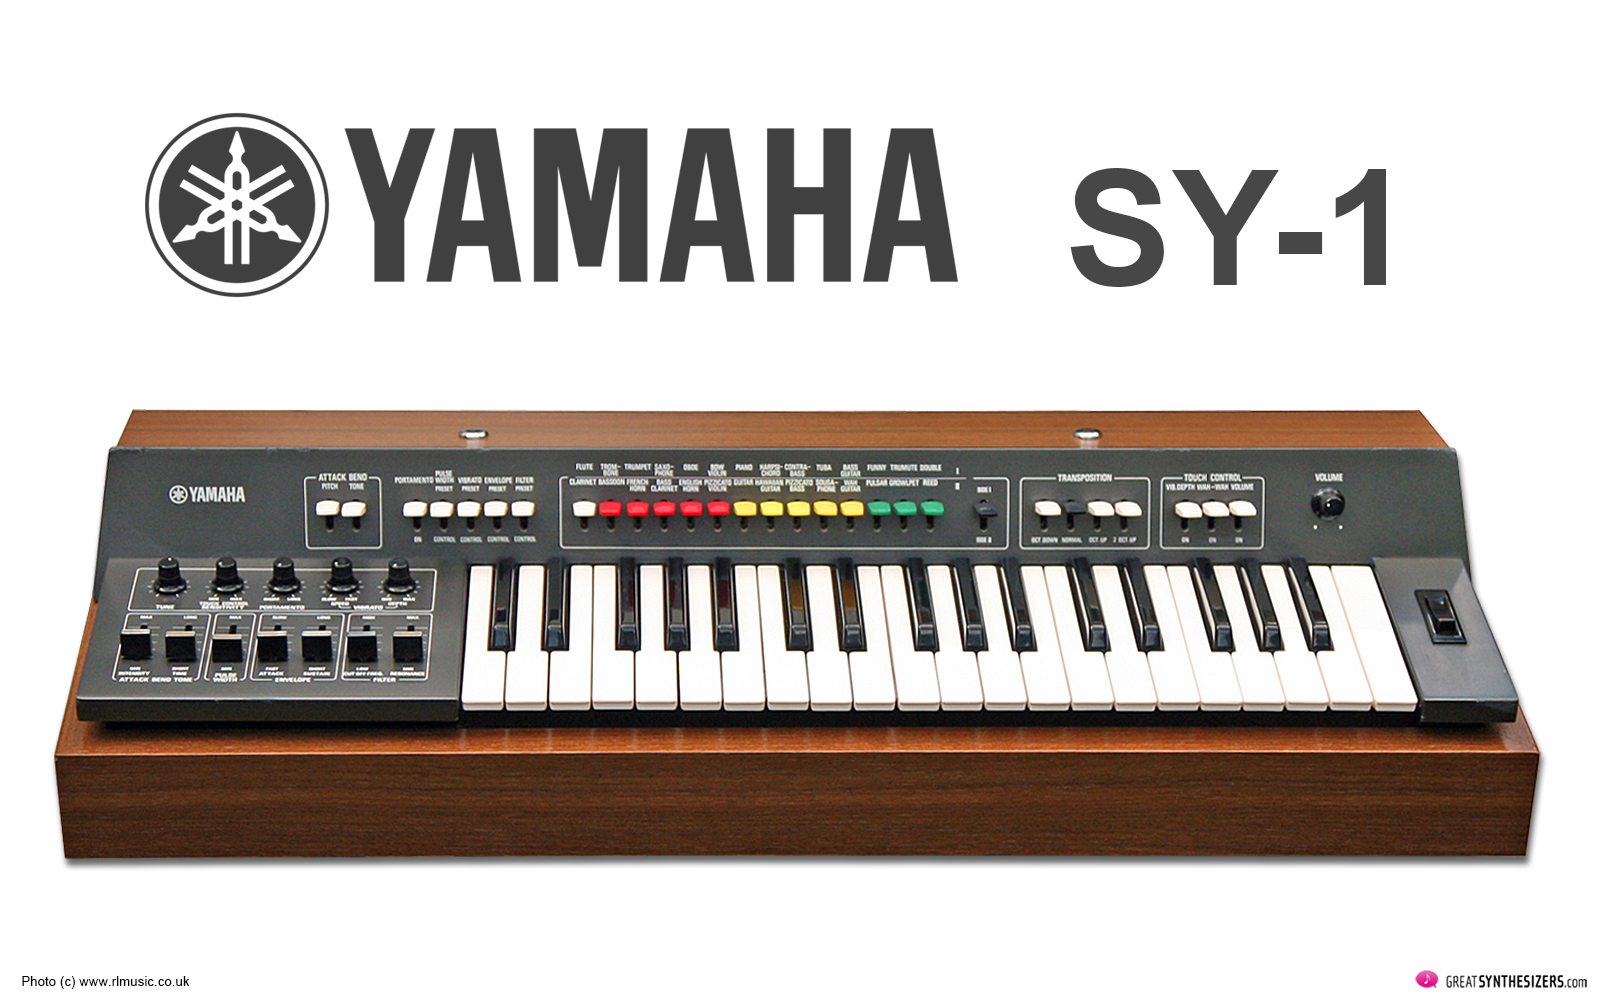 Yamaha SY-1 Synthesizer